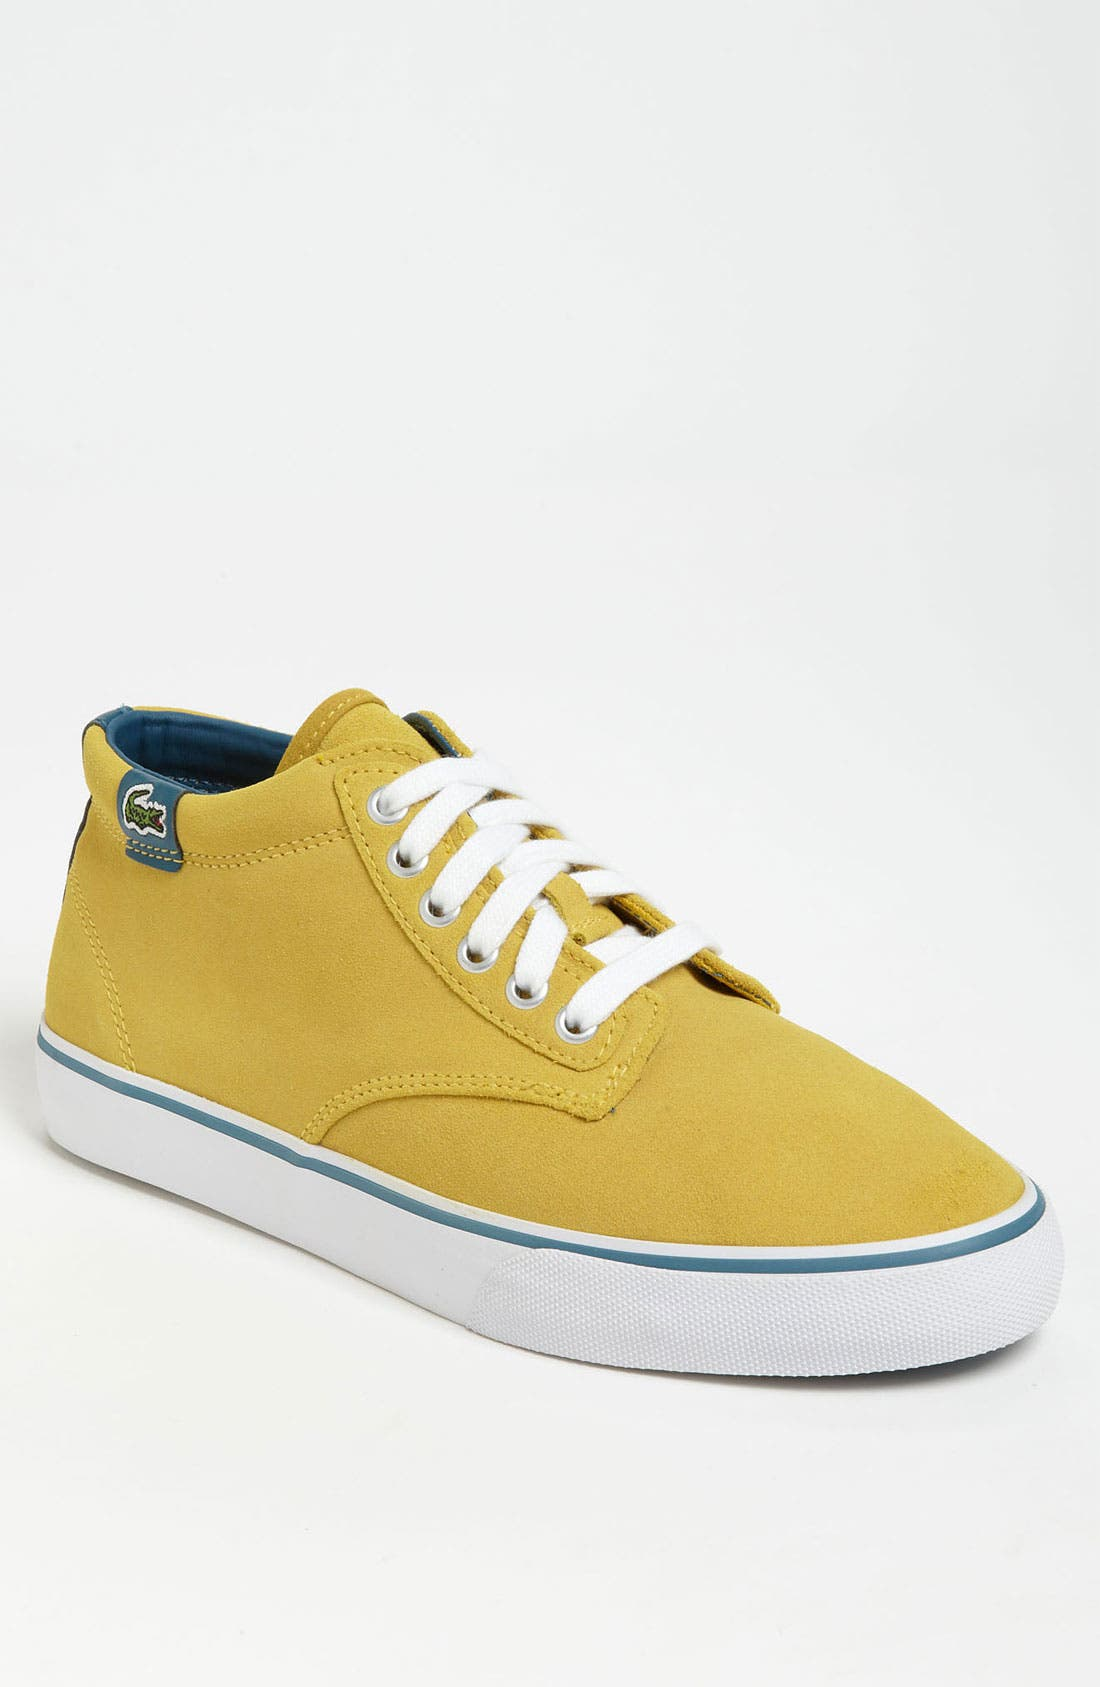 Main Image - Lacoste 'Barbados Mid LMS' Sneaker (Online Only)